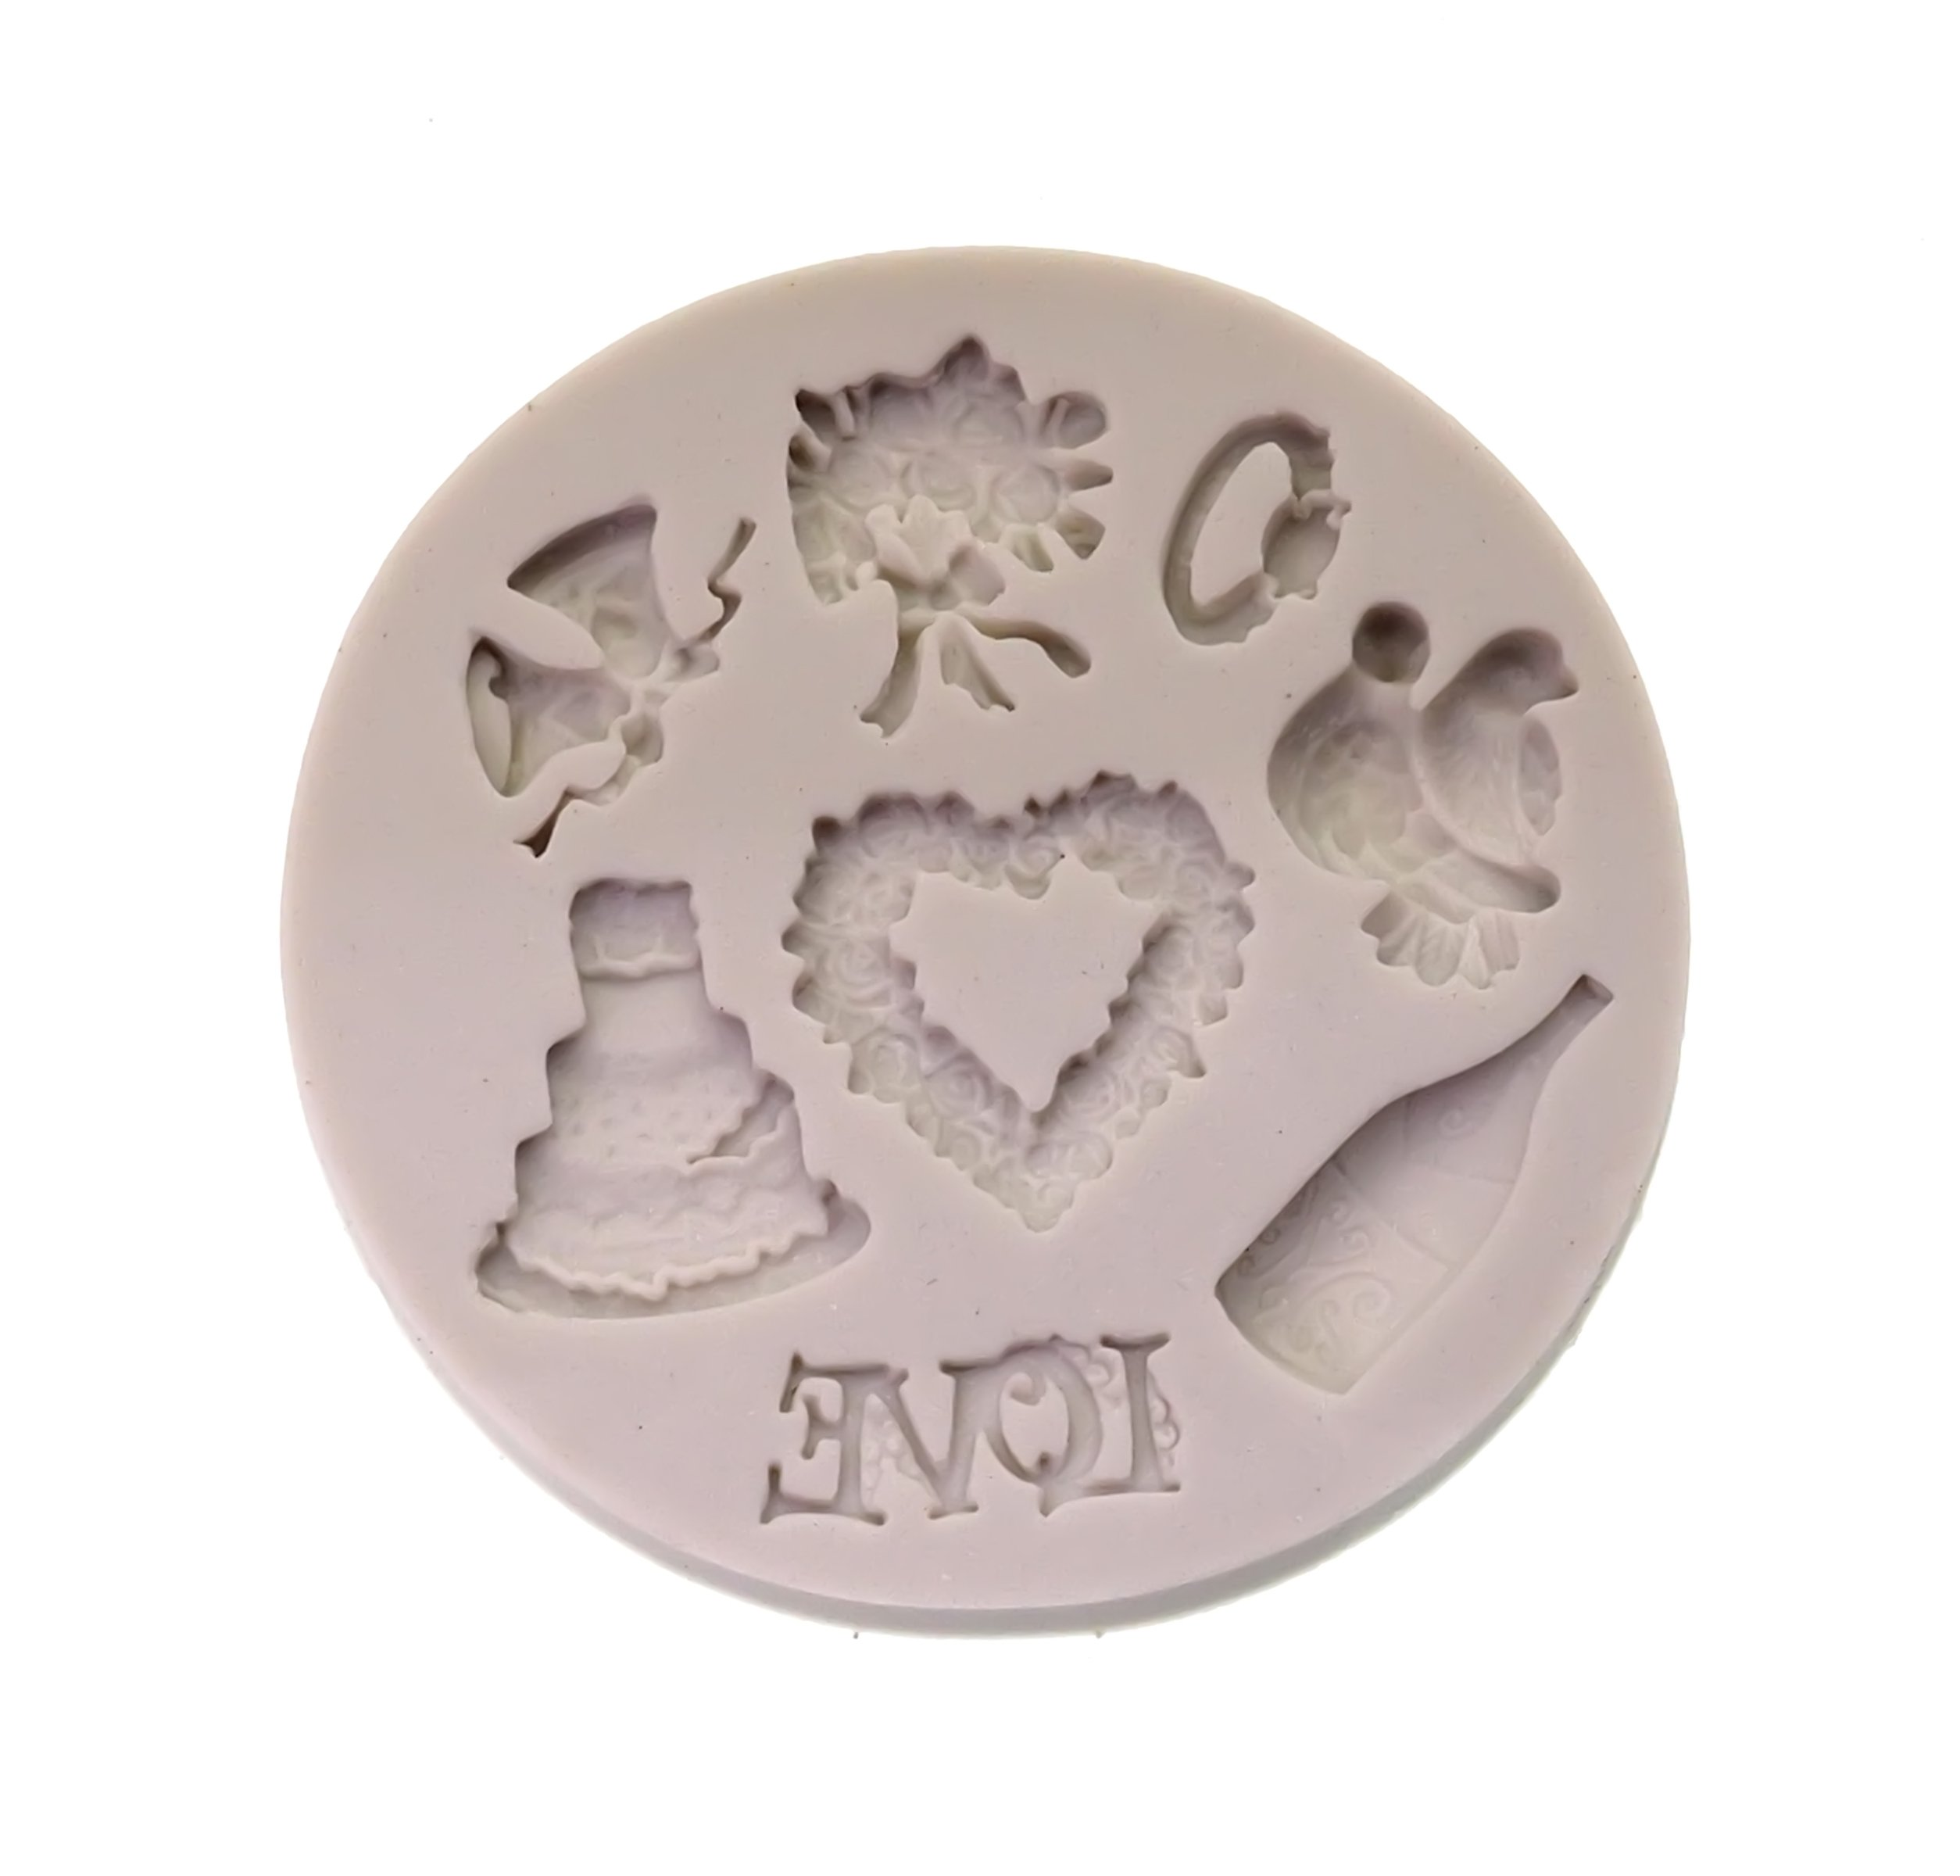 Creationtop Silicone Mold Teddy Bears Fondant and Gum Paste Candy Cake Baking Mold For Cake Decorating (Wedding Love) by CREATIONTOP (Image #1)